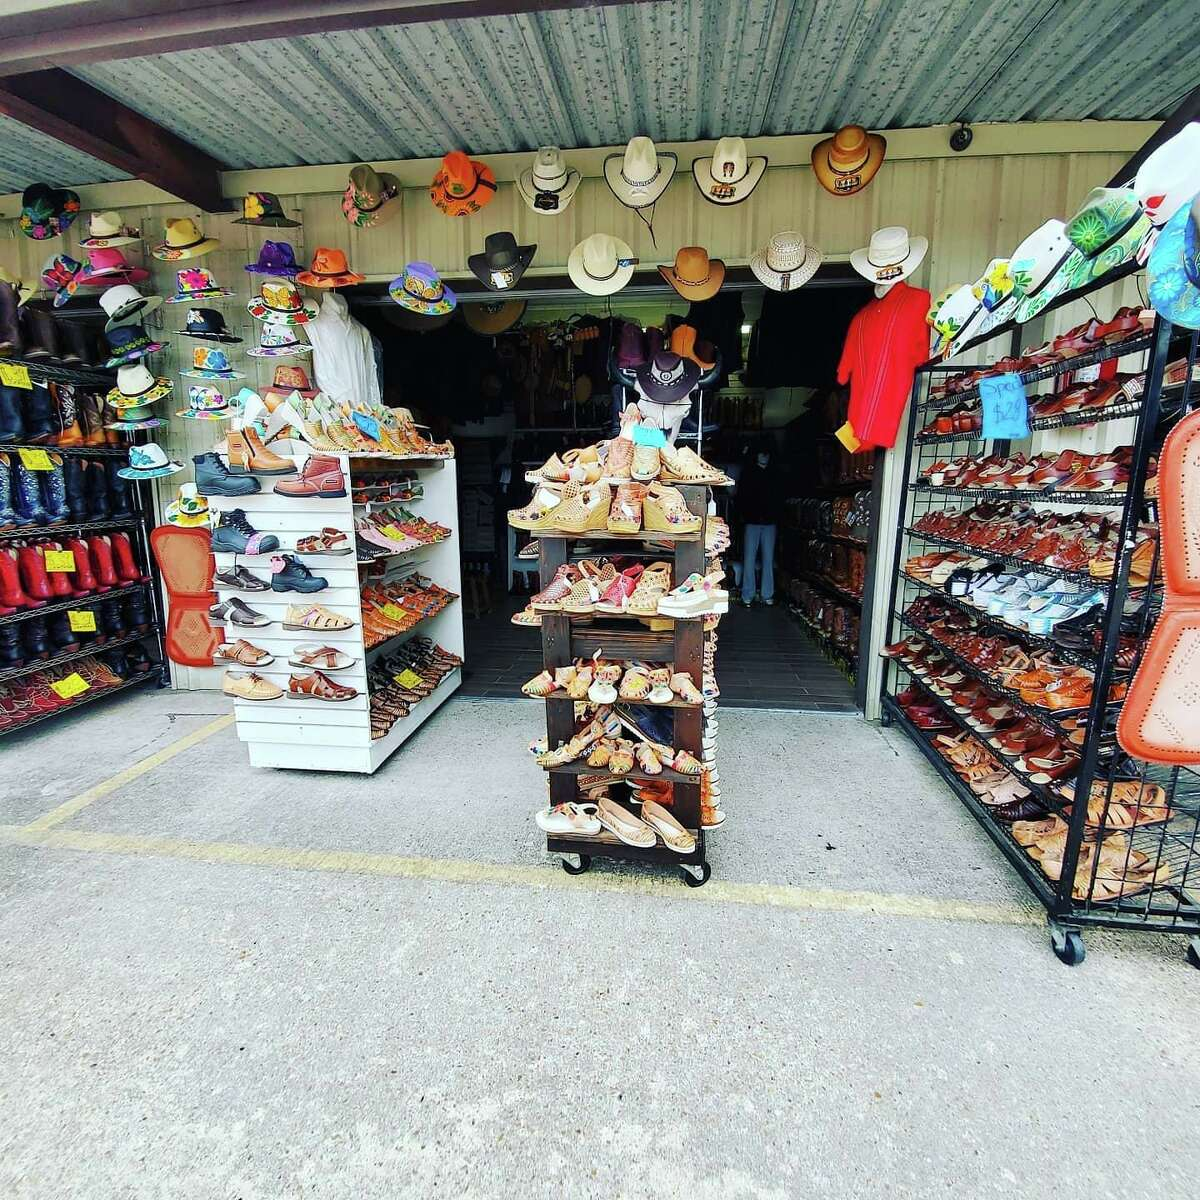 Traders Village Houston has had an easier time than indoor vendors, due to easier accessibility and looser COVID-19 restrictions